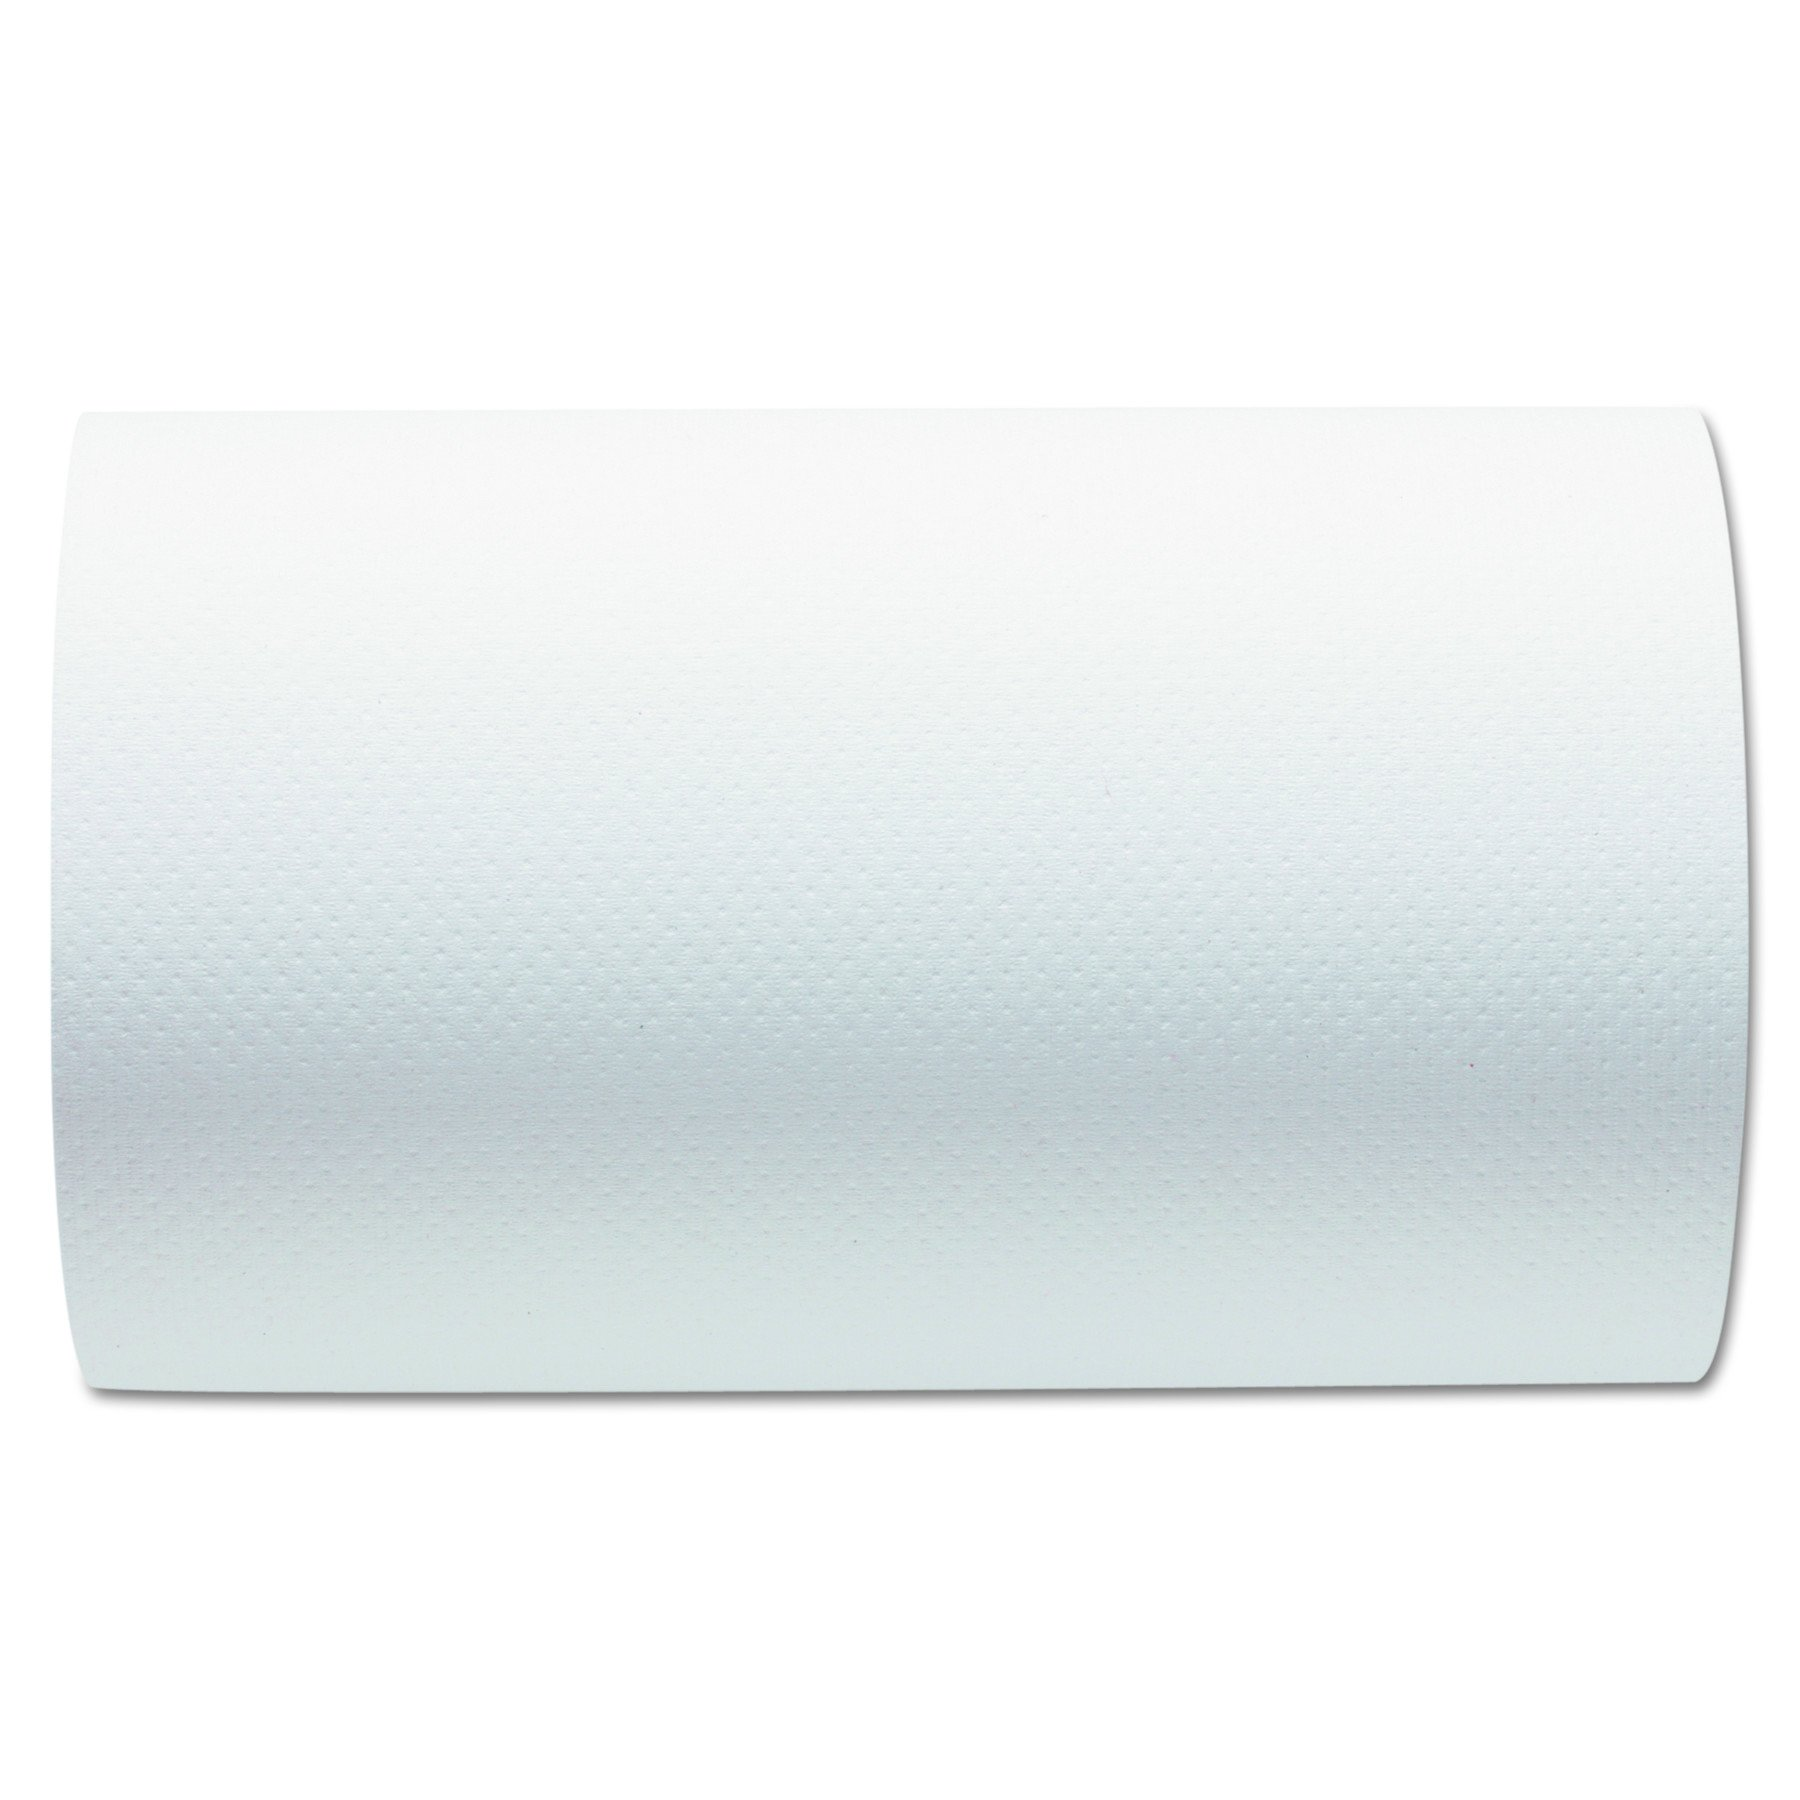 Georgia-Pacific GPC26610 Professional 26610 Hardwound Paper Towel Roll, Nonperforated, 9 x 400ft, White (Case of 6 Rolls)